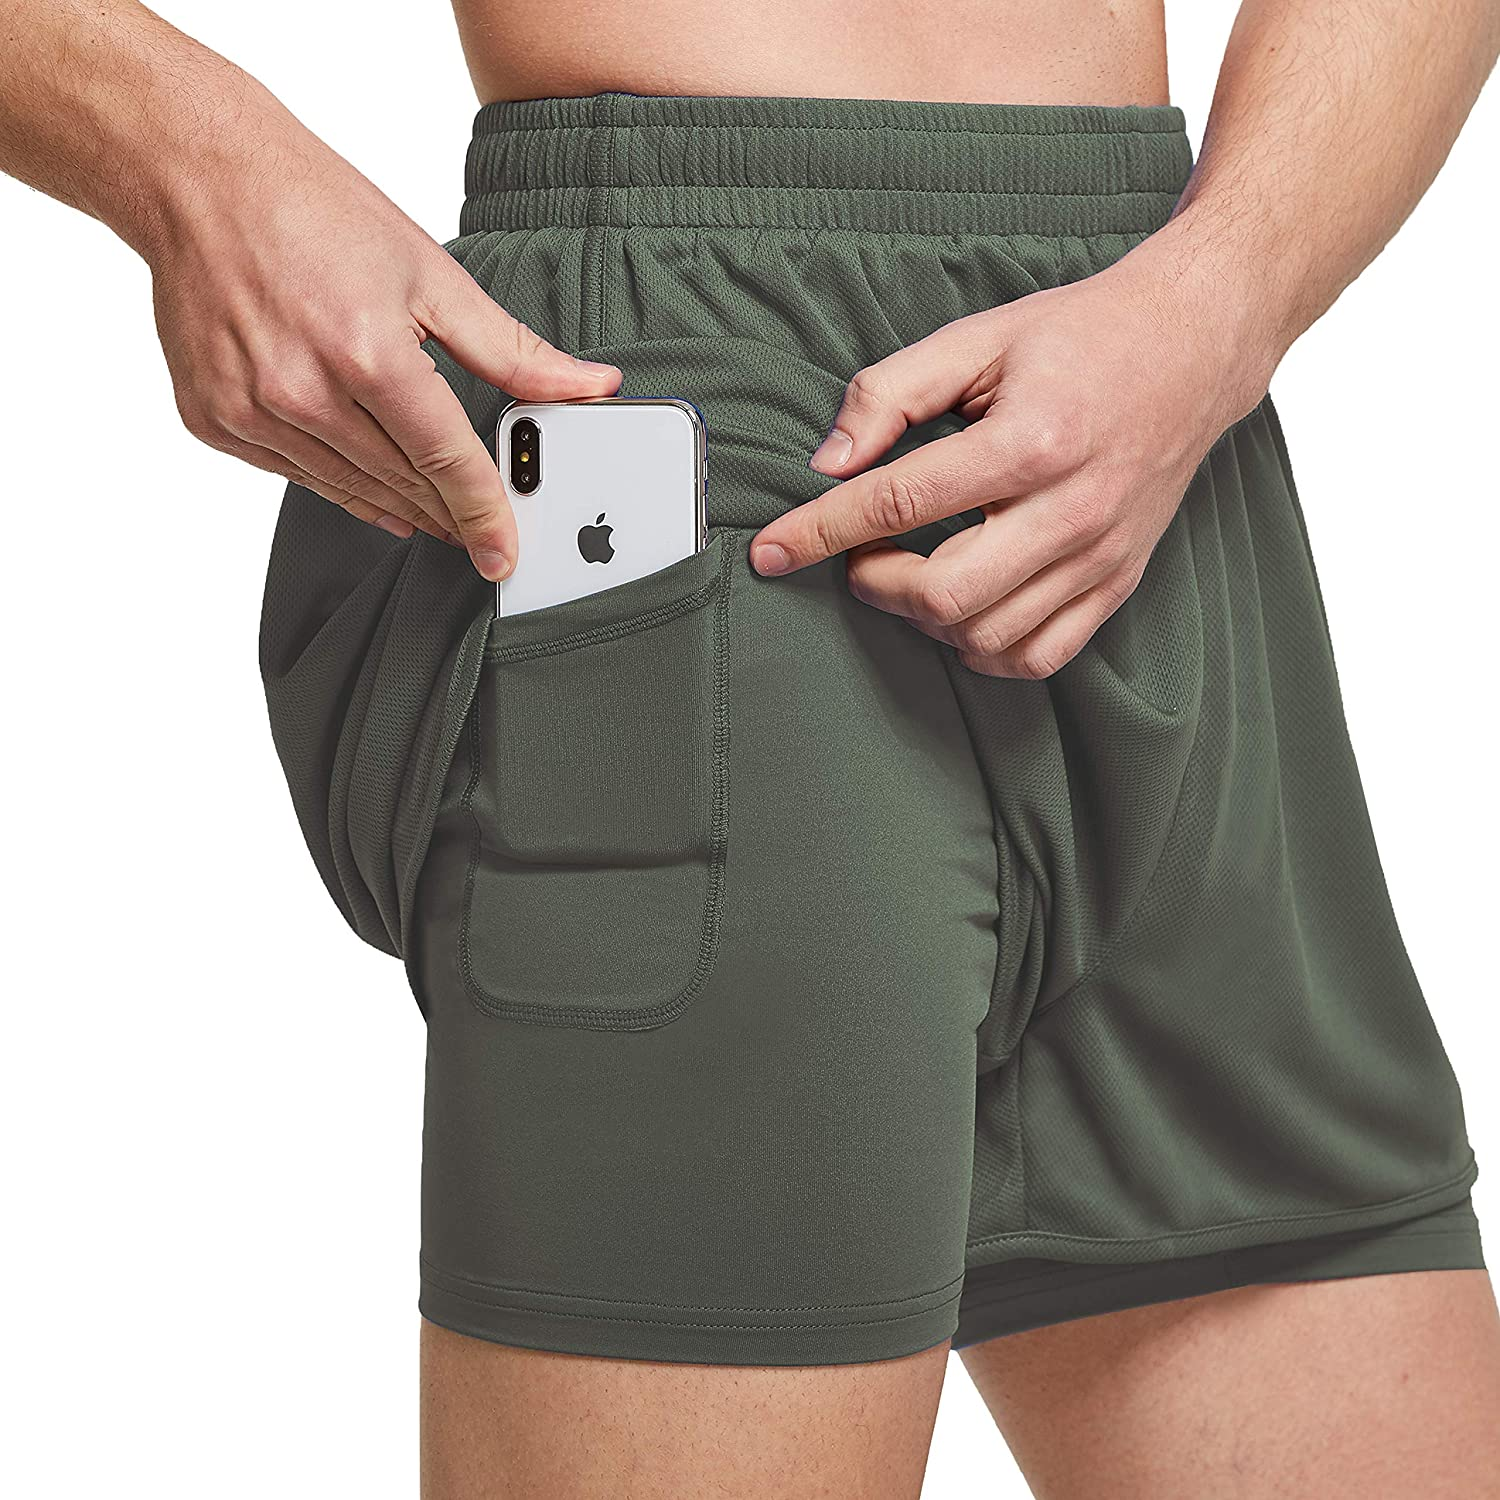 Ogeenier Mens Mesh 2 in 1 Running Workout Shorts with Compression Liner Dry Fit Athletic Gym Shorts with Pockets